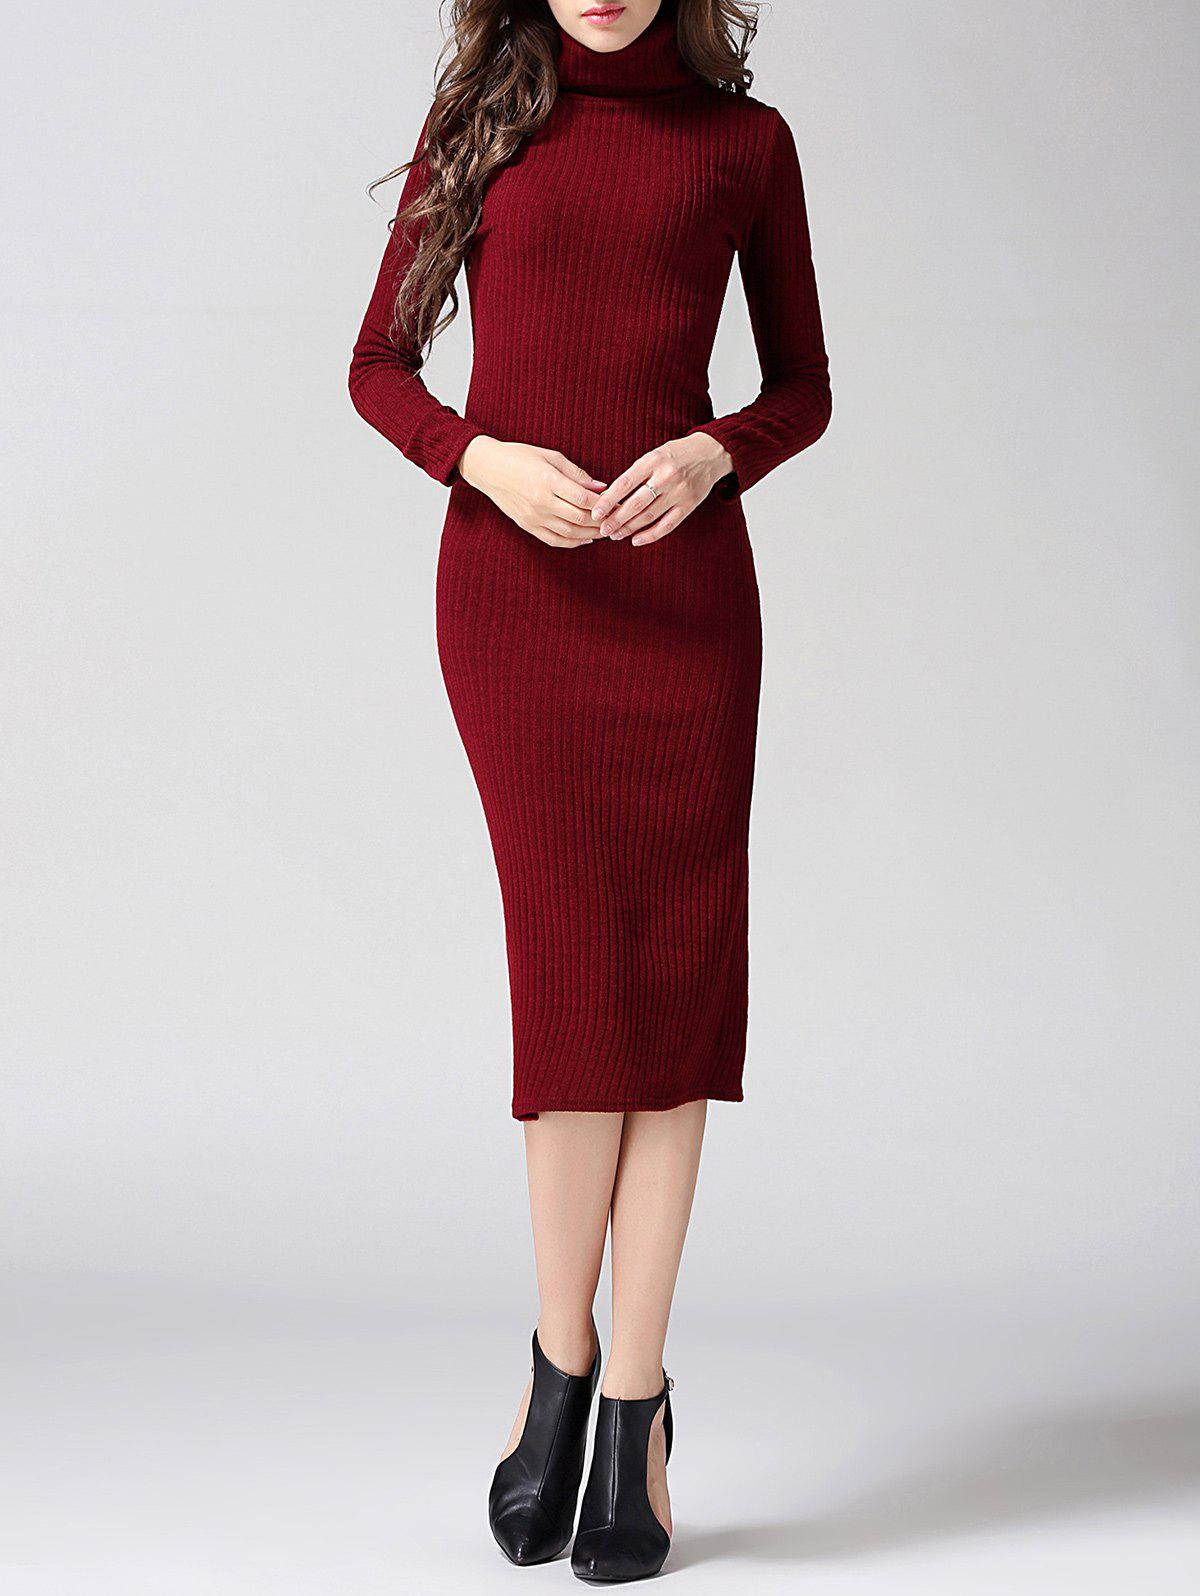 Turtleneck Ribbed Bodycon Midi Knit Dress - WINE RED M